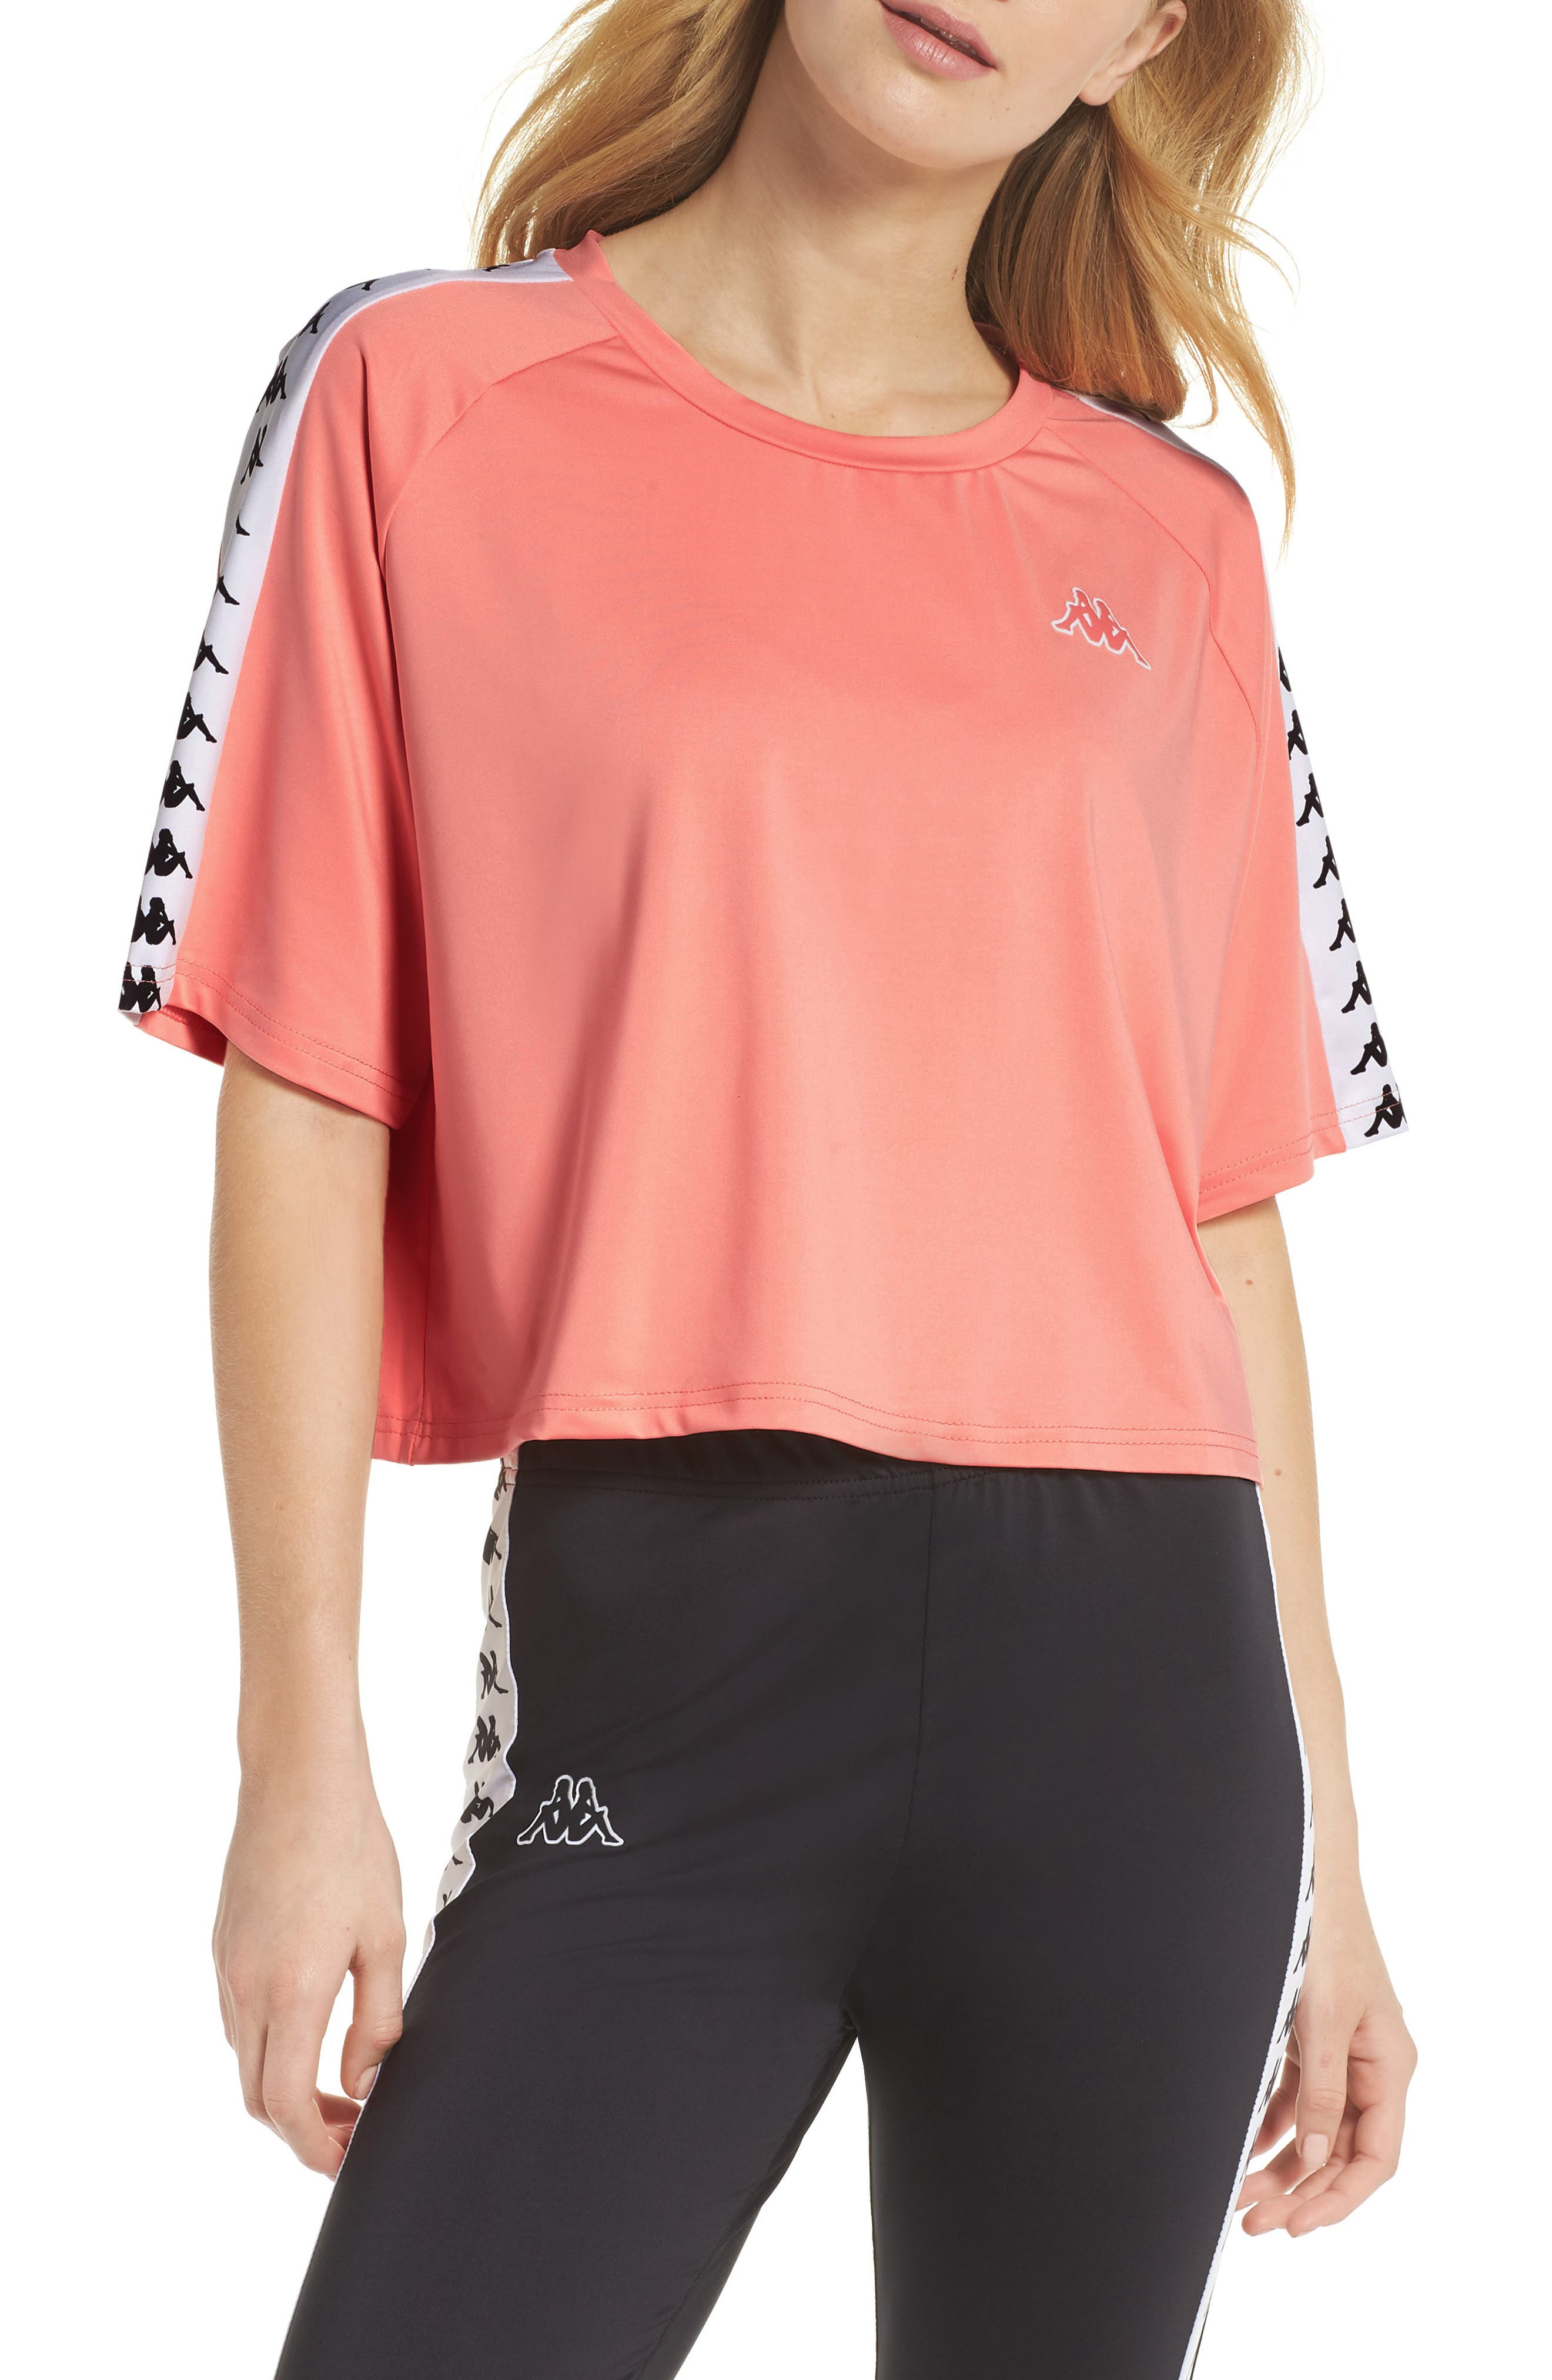 Banda Loose Tee,                             Main thumbnail 1, color,                             Pink Dk. Peach/ White